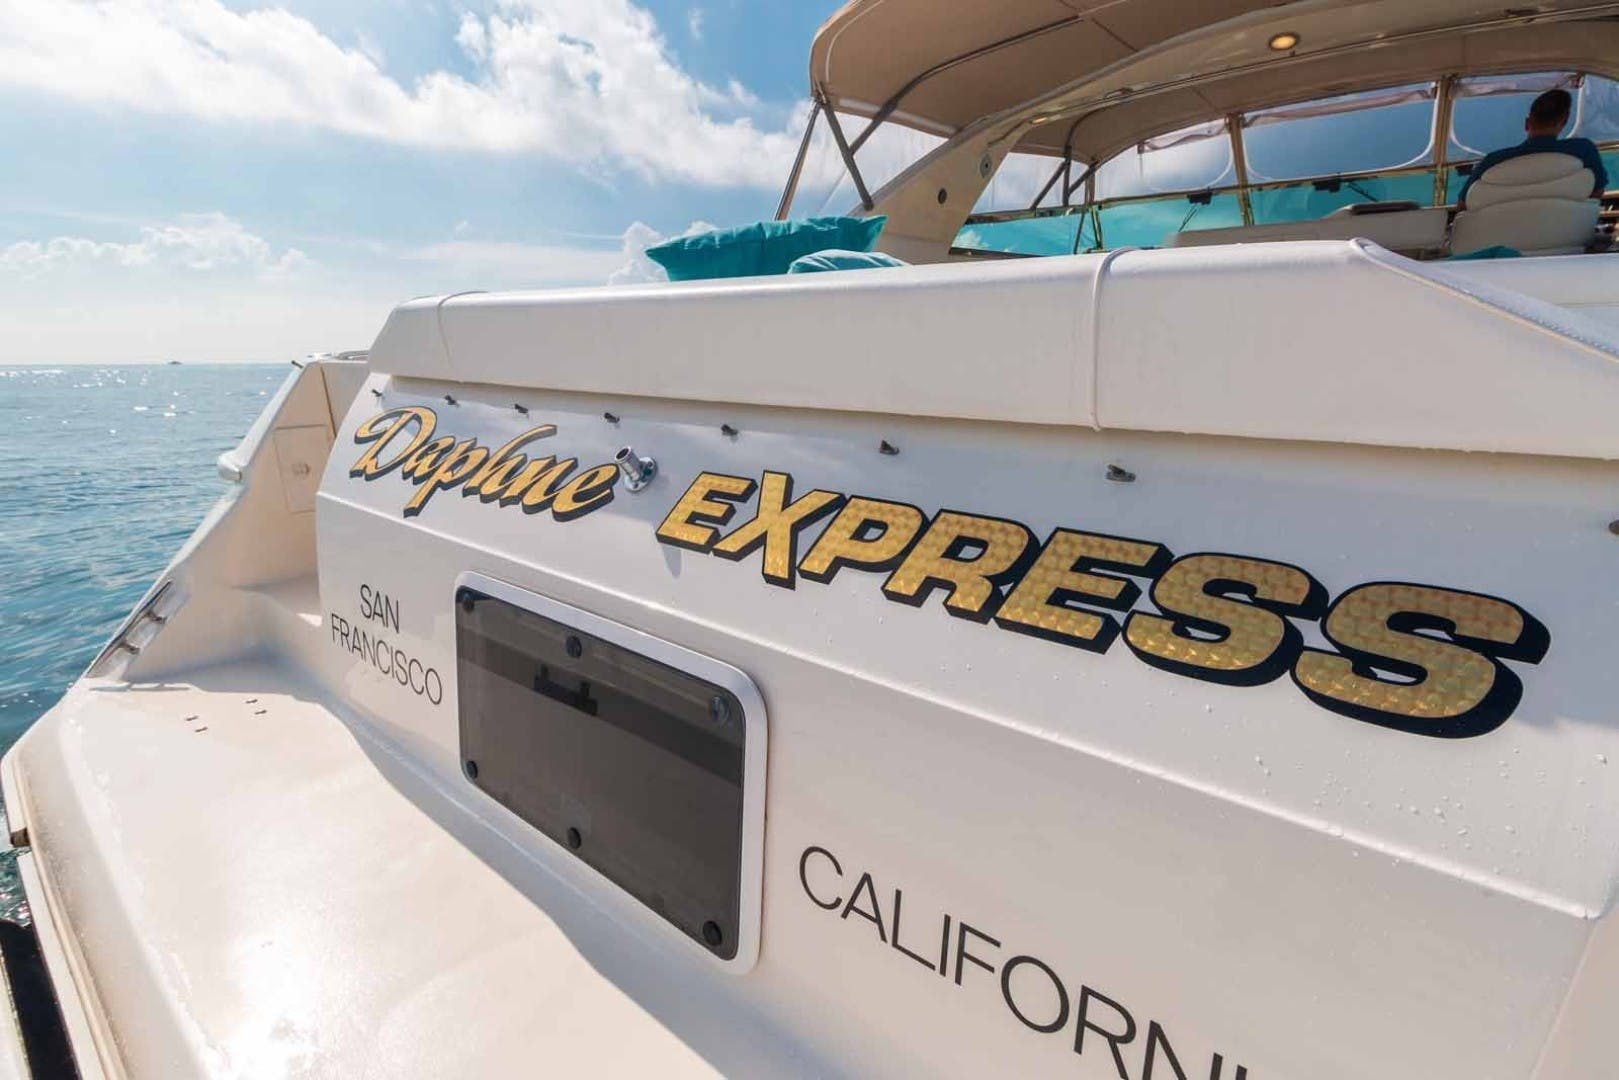 1999 Sea Ray 63' Super Sun Sport DAPHNE EXPRESS | Picture 5 of 44